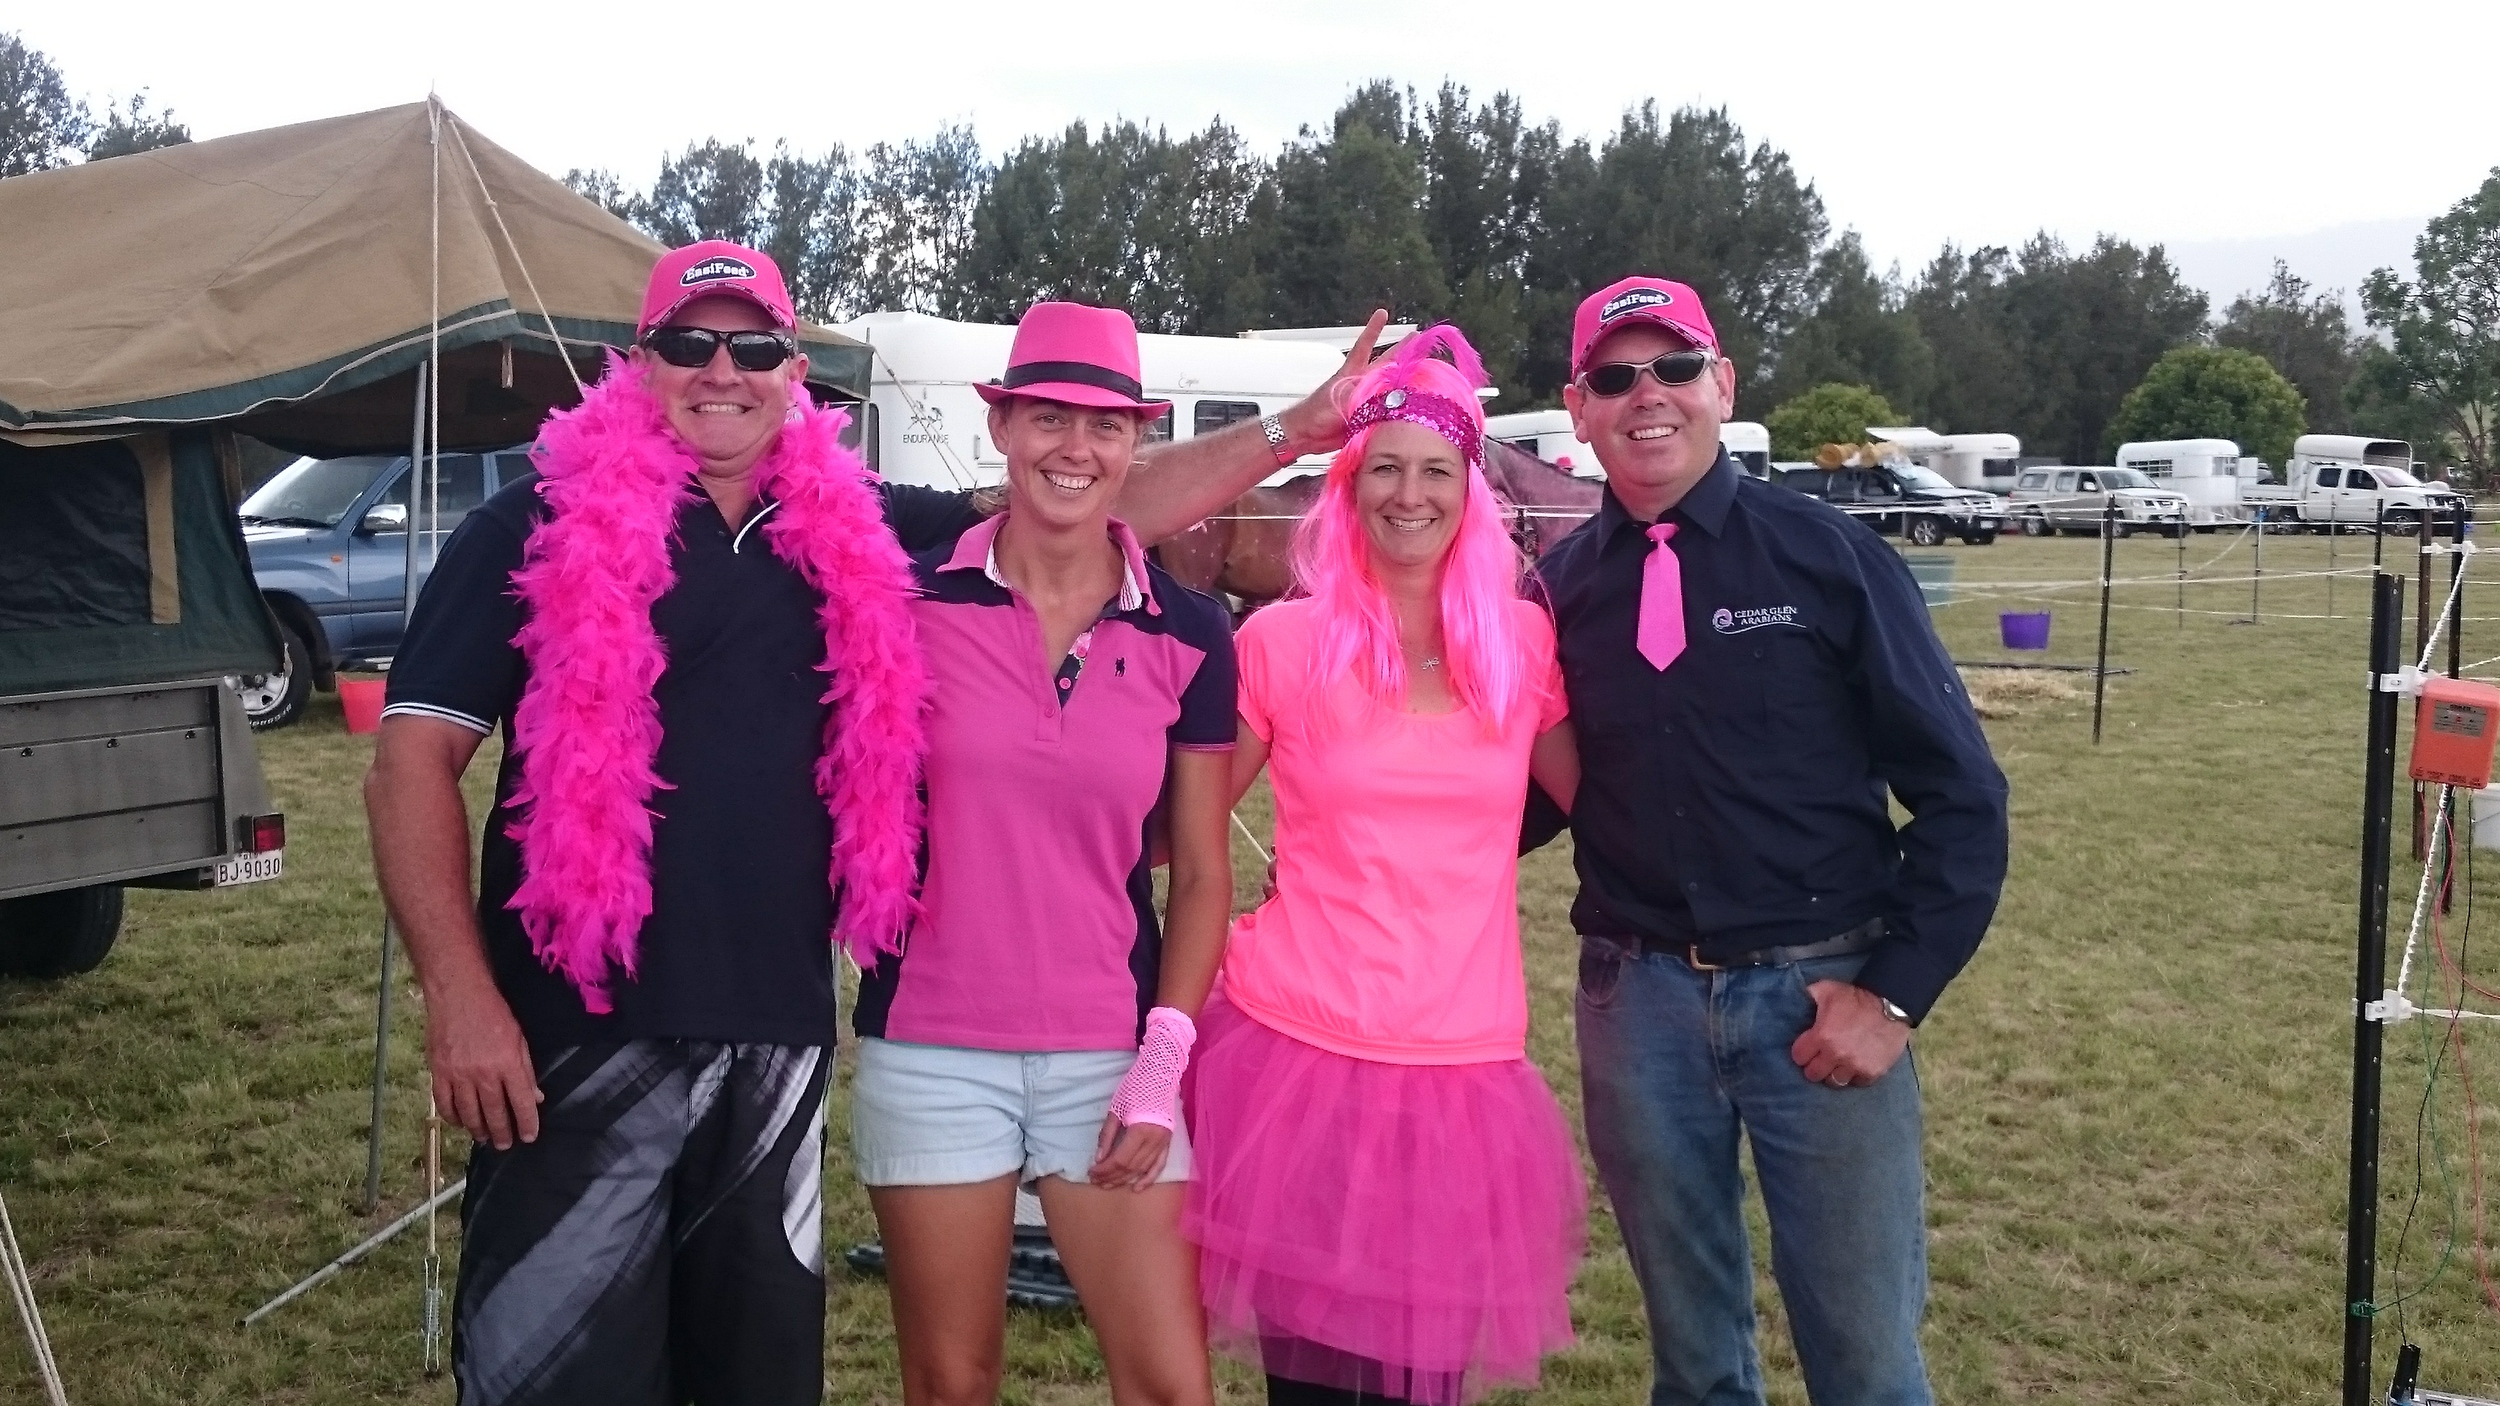 """Thank you for the pink hats and the support from Pryde's EasiFeed. We had a successful weekend with 3 horses completing the 40 km Event. I even scored a price for the best dress up.  Catch up soon, Sabrina.         Normal   0           false   false   false     EN-AU   ZH-TW   AR-SA                                                                                                                                                                                                                                                                                                                                                                                                                                                                                                                                                                                                                                                                                                                                                                                                                                                                     /* Style Definitions */  table.MsoNormalTable {mso-style-name:""""Table Normal""""; mso-tstyle-rowband-size:0; mso-tstyle-colband-size:0; mso-style-noshow:yes; mso-style-priority:99; mso-style-parent:""""""""; mso-padding-alt:0cm 5.4pt 0cm 5.4pt; mso-para-margin:0cm; mso-para-margin-bottom:.0001pt; mso-pagination:widow-orphan; font-size:11.0pt; font-family:""""Calibri"""",sans-serif; mso-ascii-font-family:Calibri; mso-ascii-theme-font:minor-latin; mso-hansi-font-family:Calibri; mso-hansi-theme-font:minor-latin;}"""